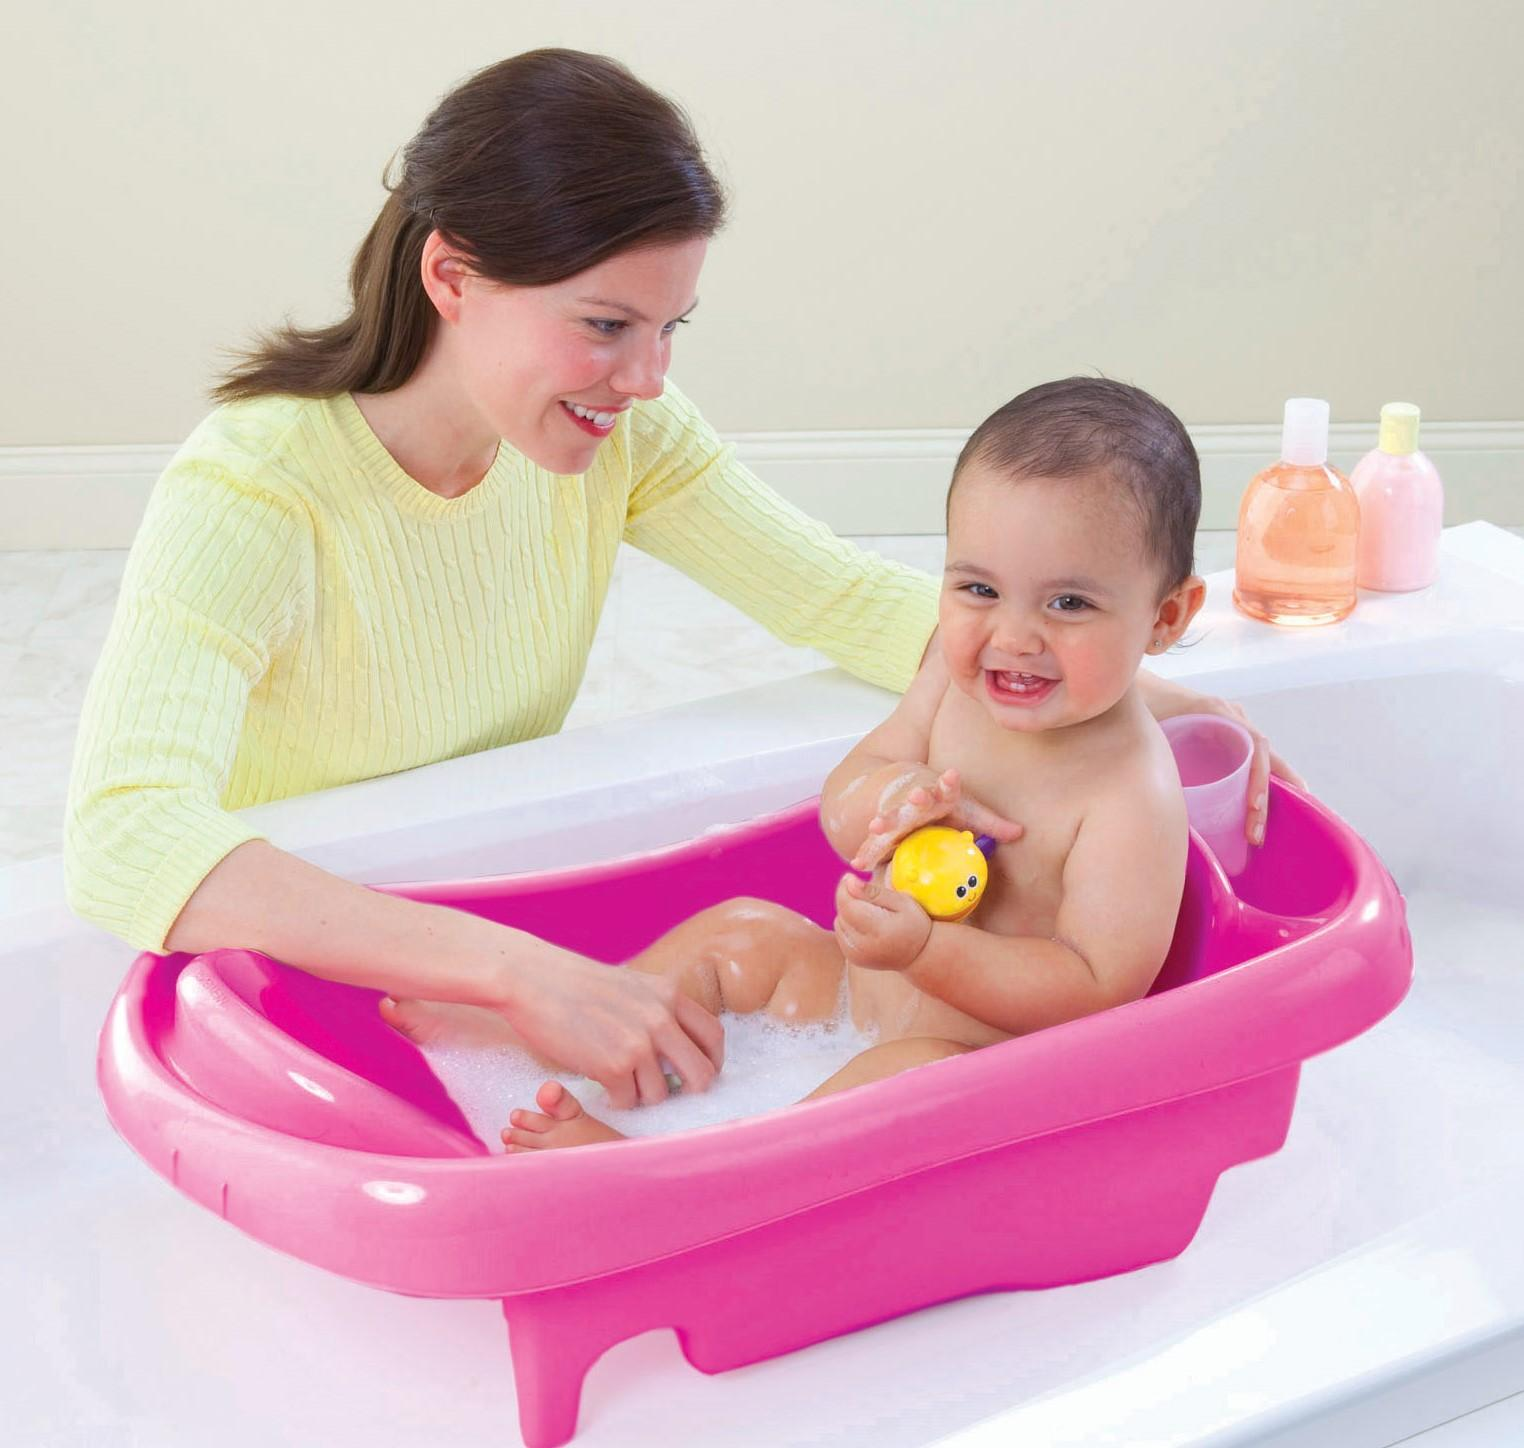 baby bathing comfortable wash first years infant toddler tub w sling bath tu. Black Bedroom Furniture Sets. Home Design Ideas